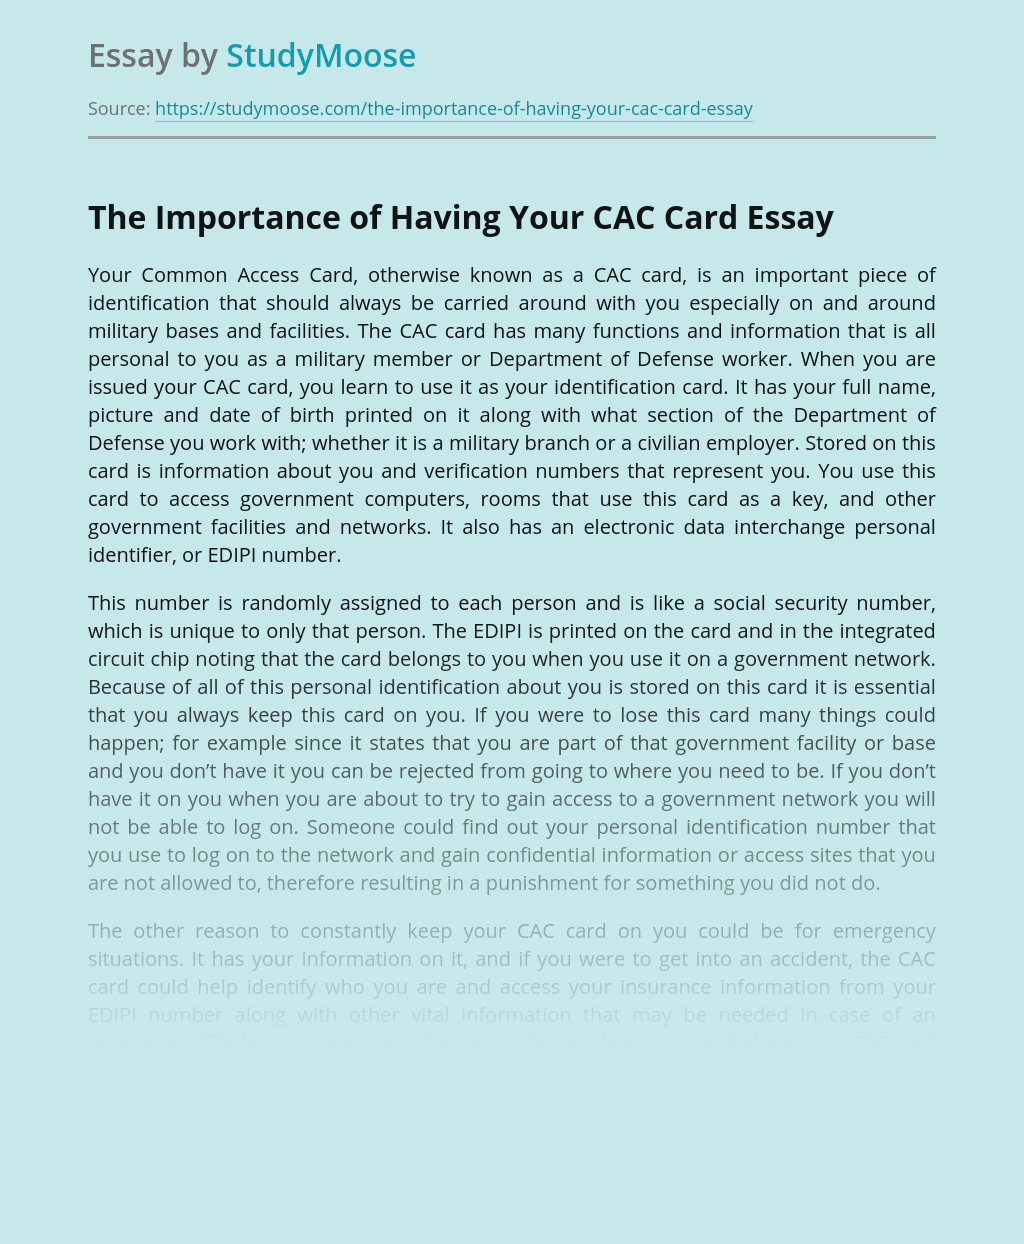 The Importance of Having Your CAC Card